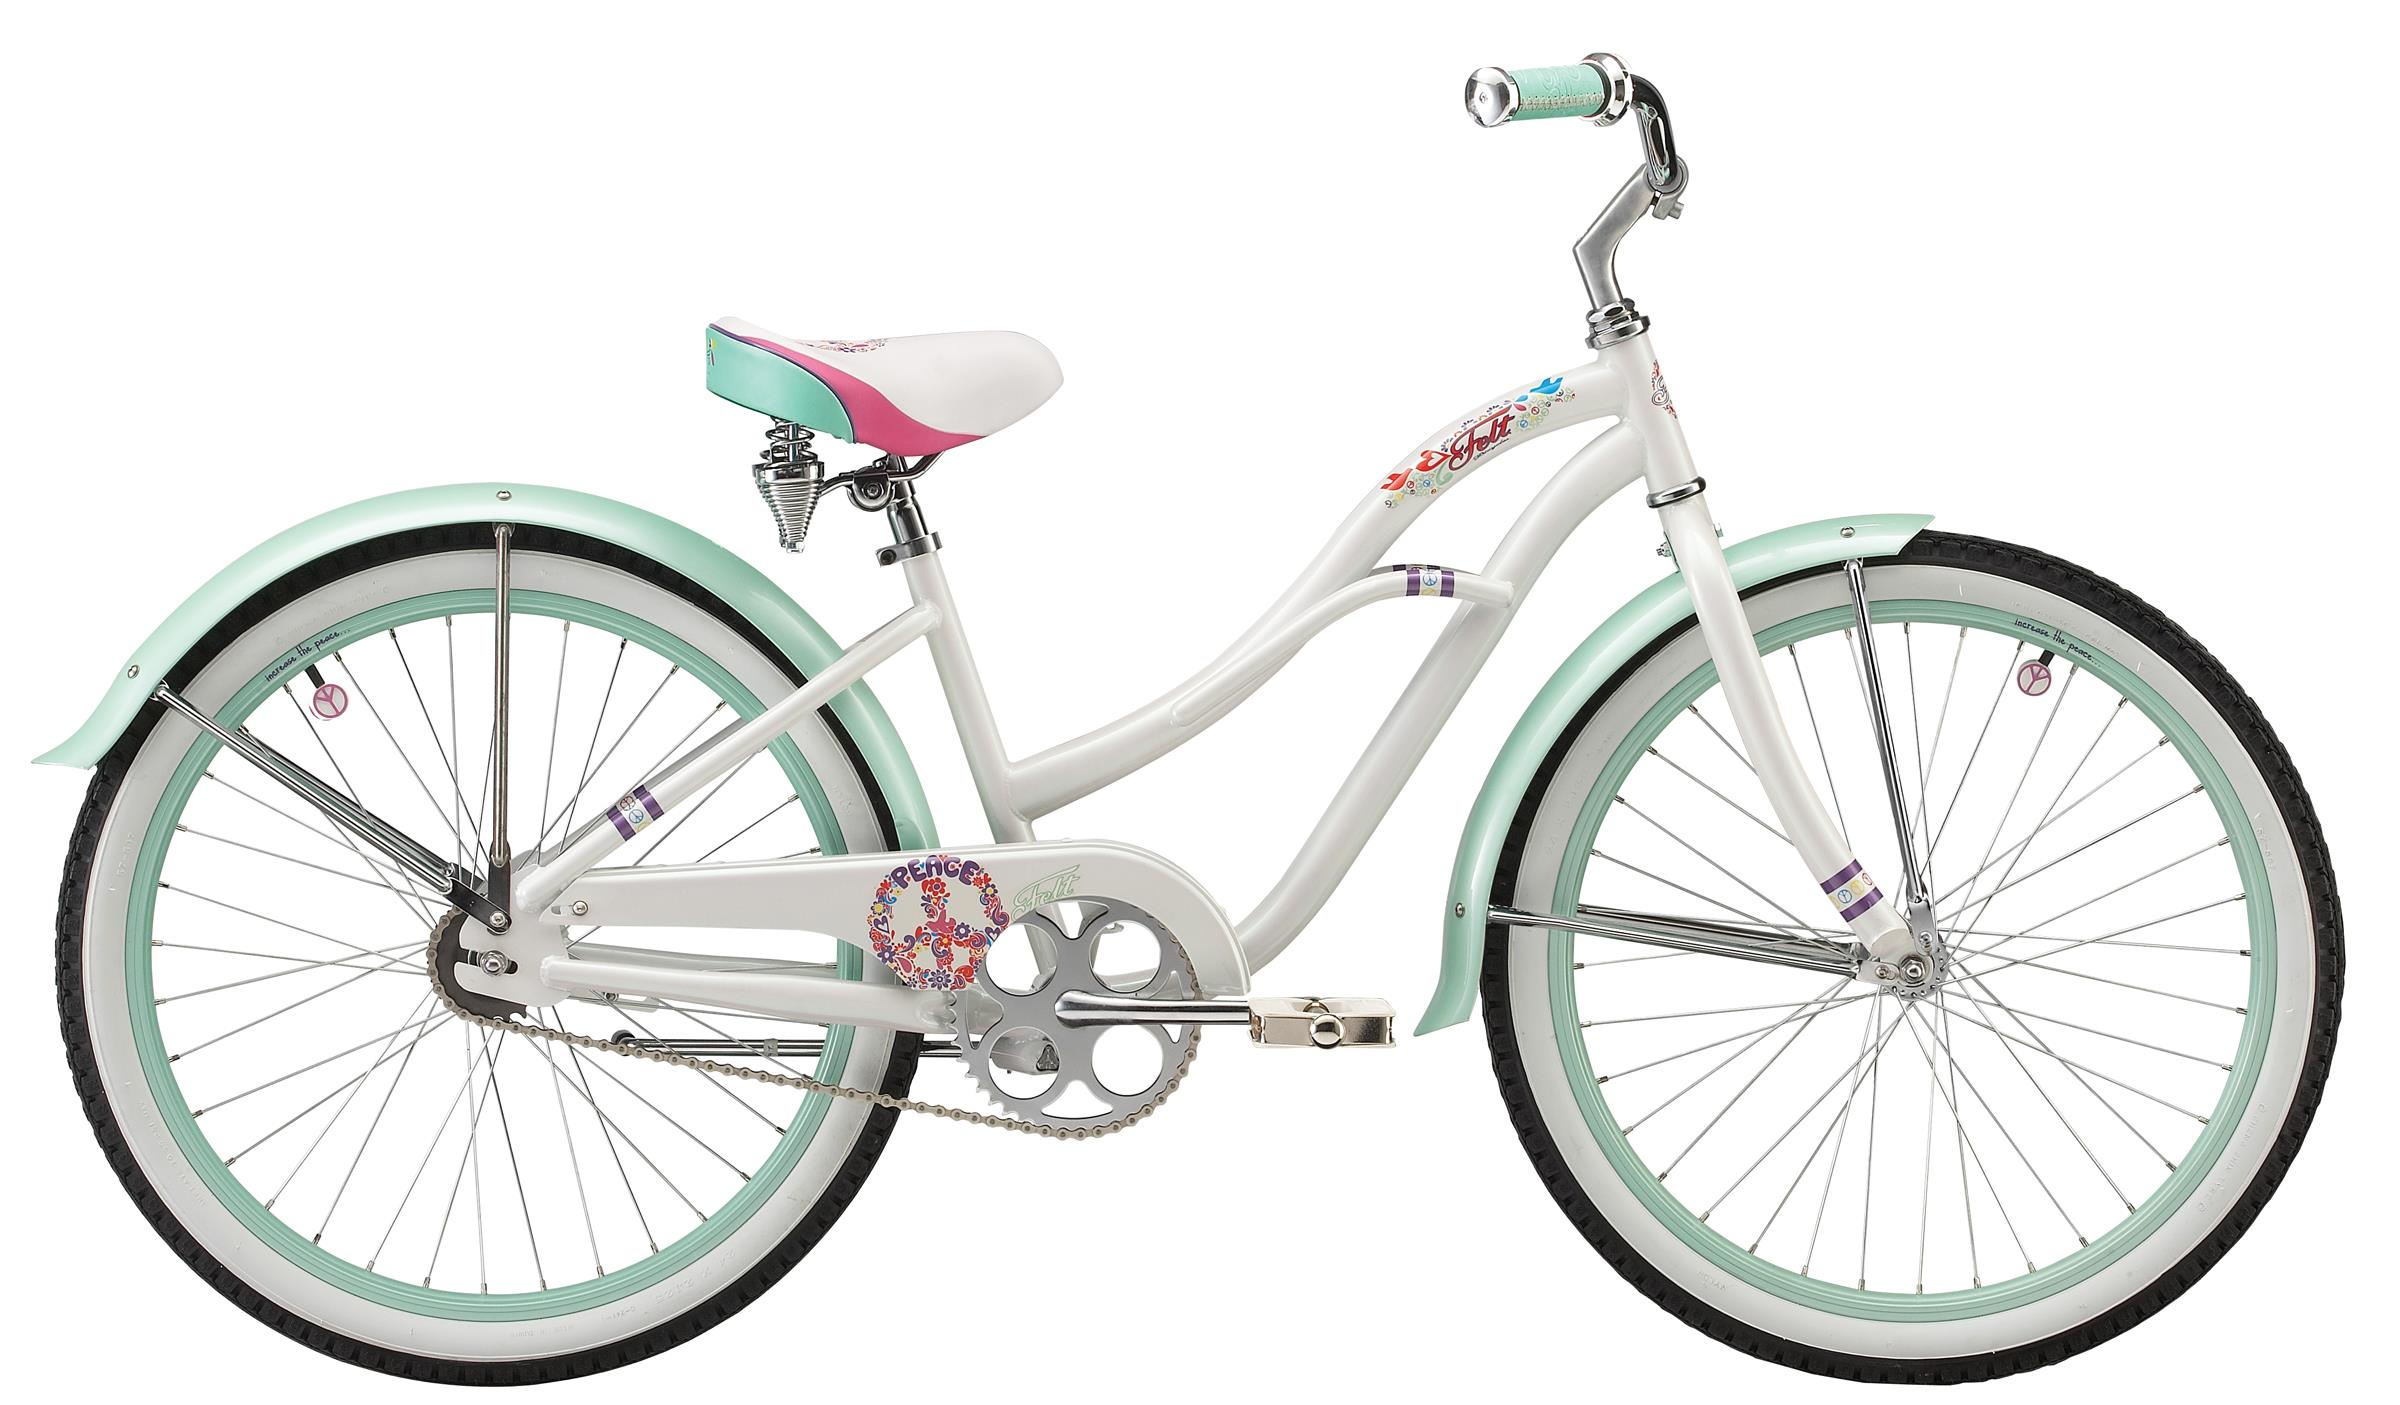 BikePedia - Bicycle Value Guide